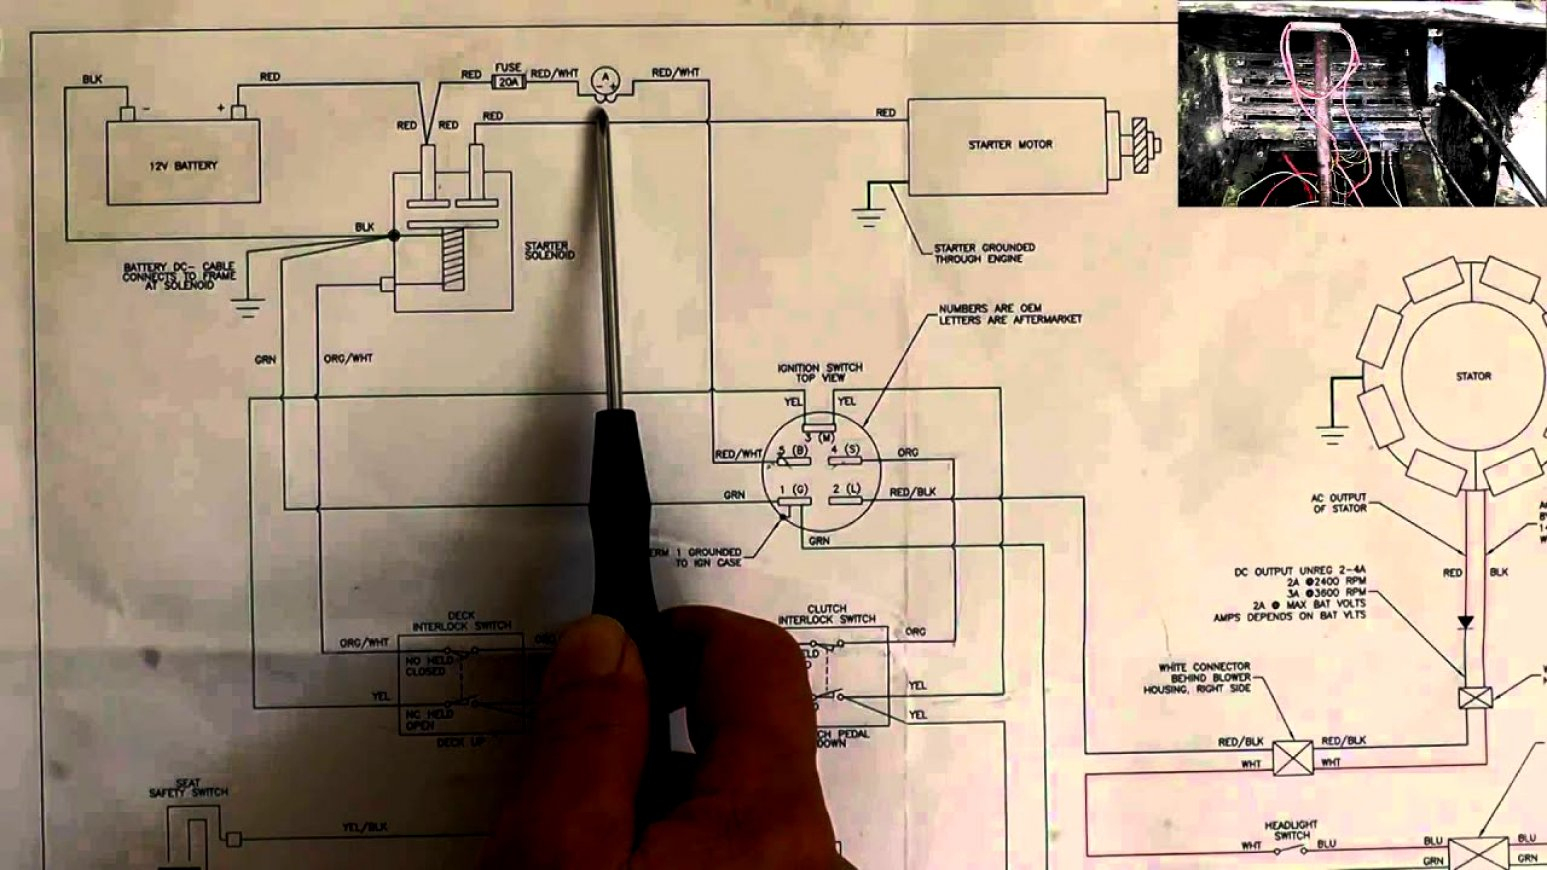 Wright Stander Wiring Diagram - Trusted Wiring Diagram - Bad Boy Wiring Diagram